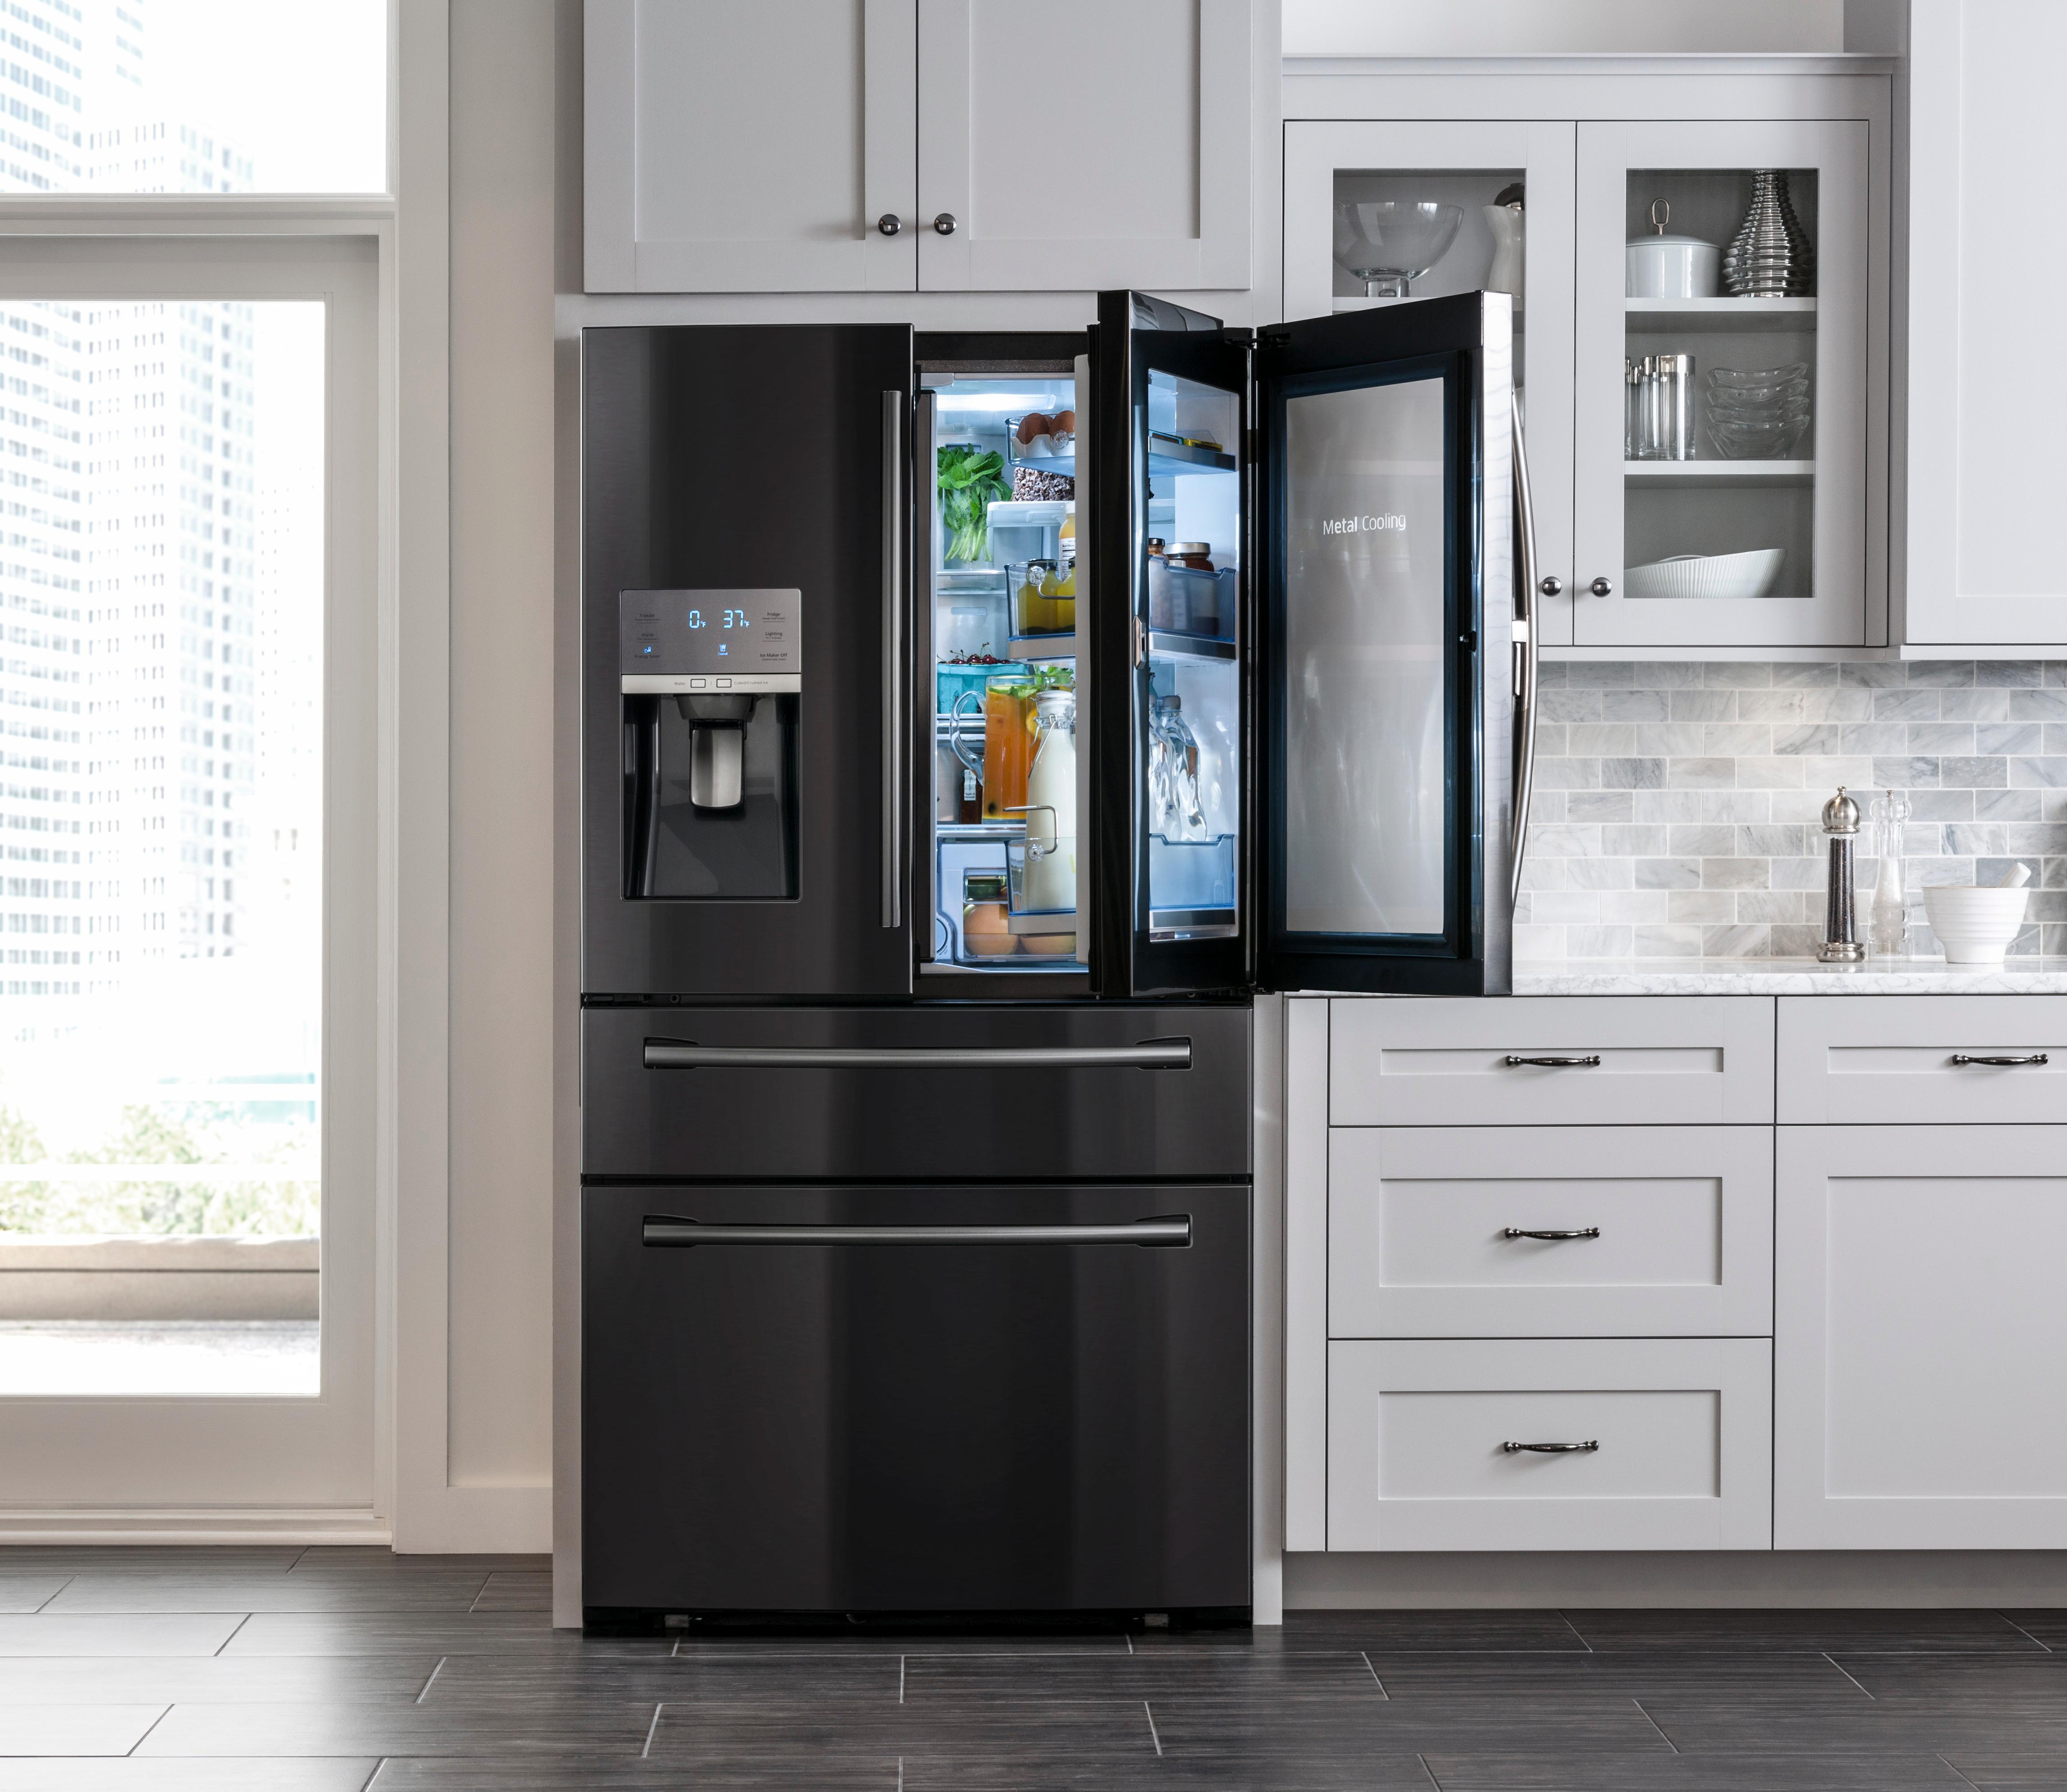 Remodel Your Kitchen with the Appliance Sales Event at Best Buy